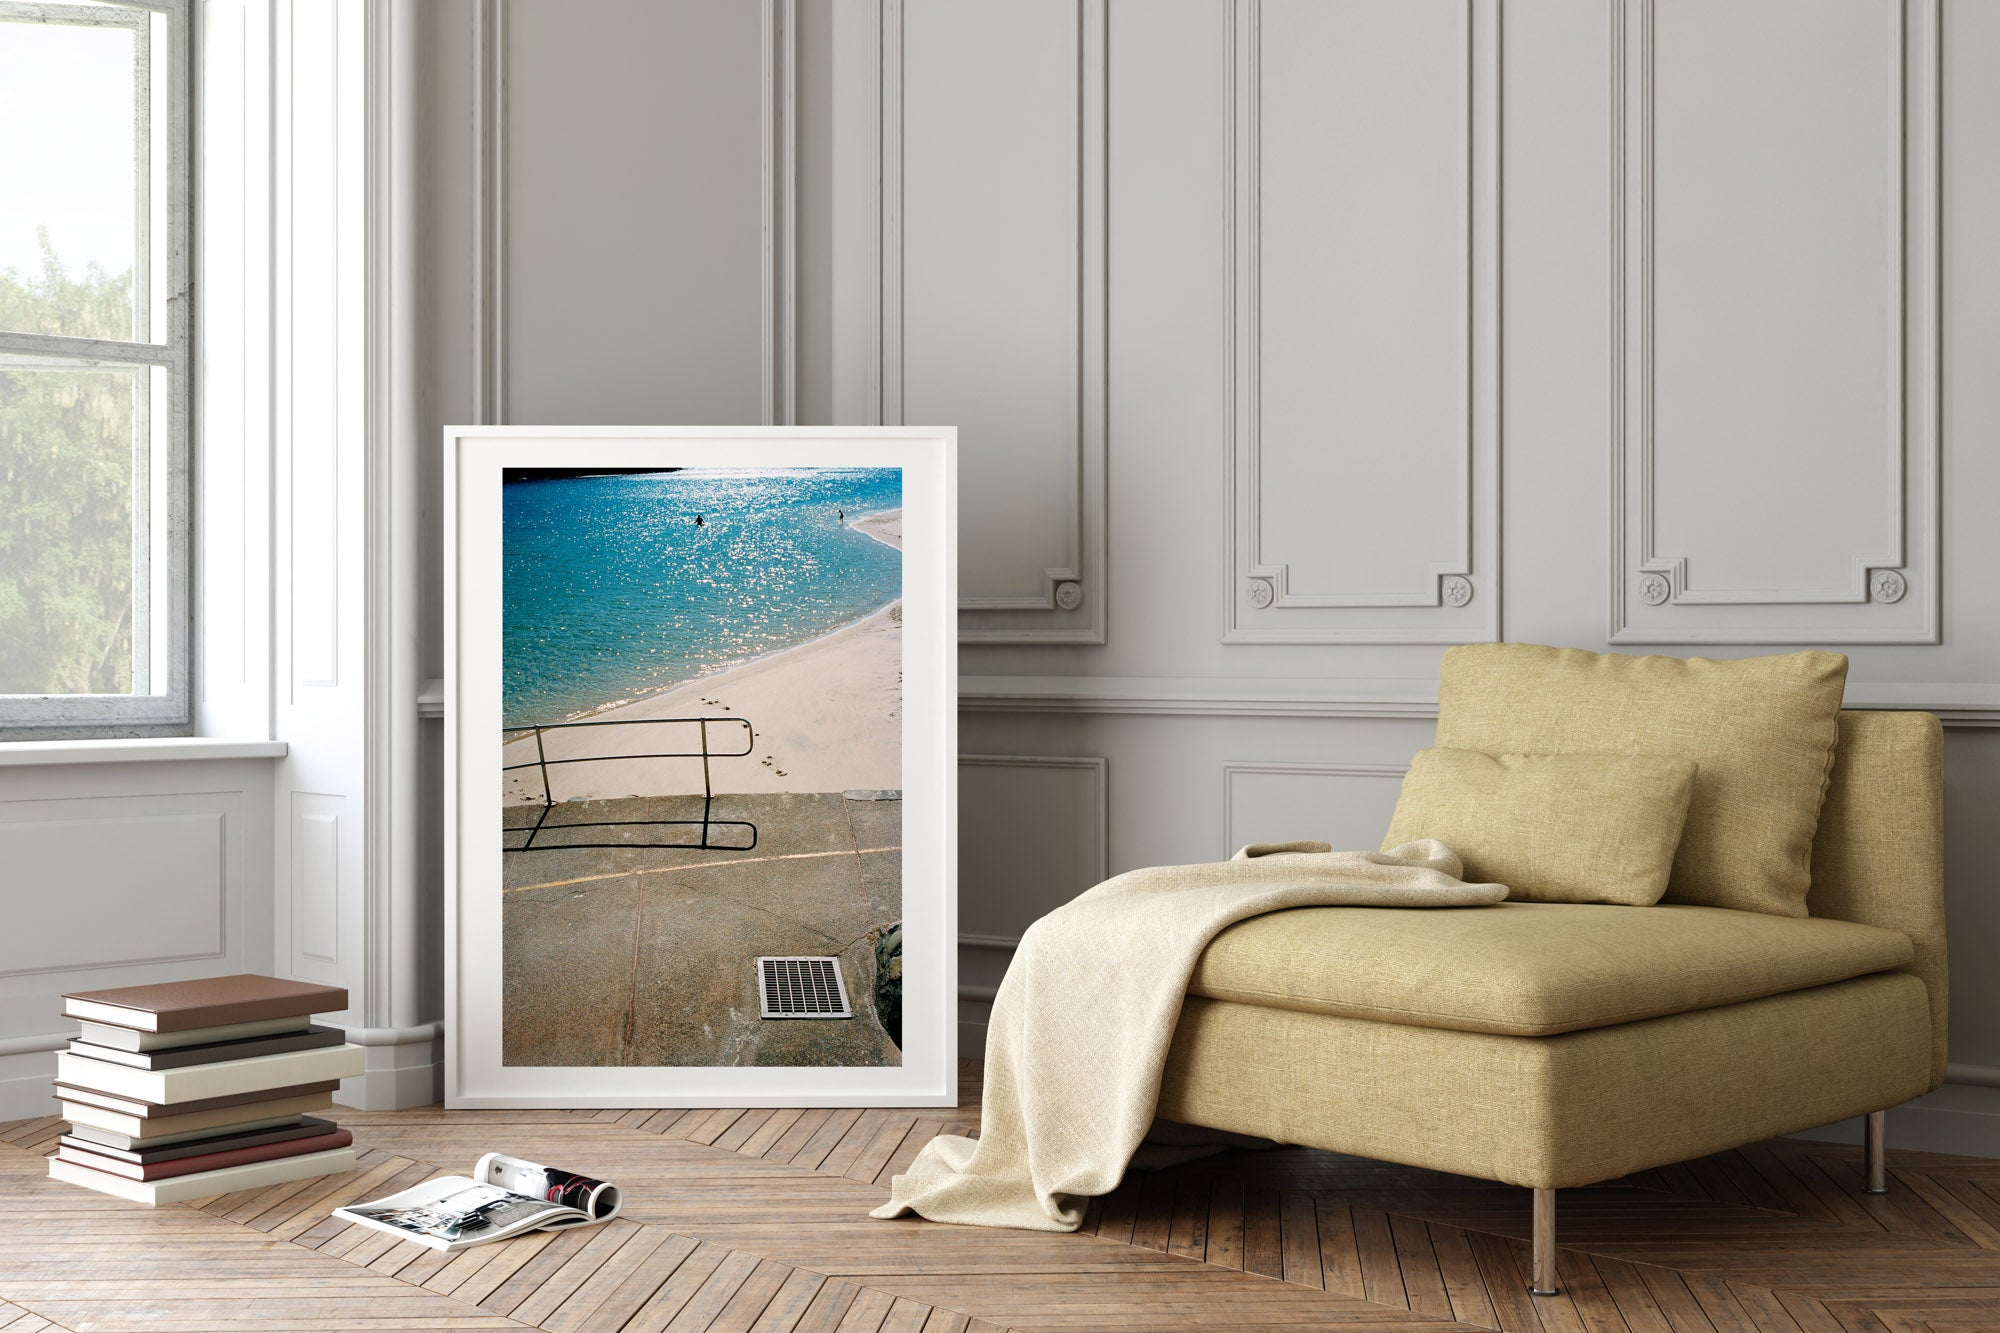 """A photograph of a blue river with people swimming, a pavement & rallying in the foreground of the photo. White sand and & water. The photo is in portrait orientation."" Artwork, Prints, wall art, GoldCoast Queensland Australia, Photographic prints, Ocean Beach, Framed artwork, Beach Posters   Film photography, Vintage photo style,  Interior design, Film photography Pictures sun & surf, lounge room"